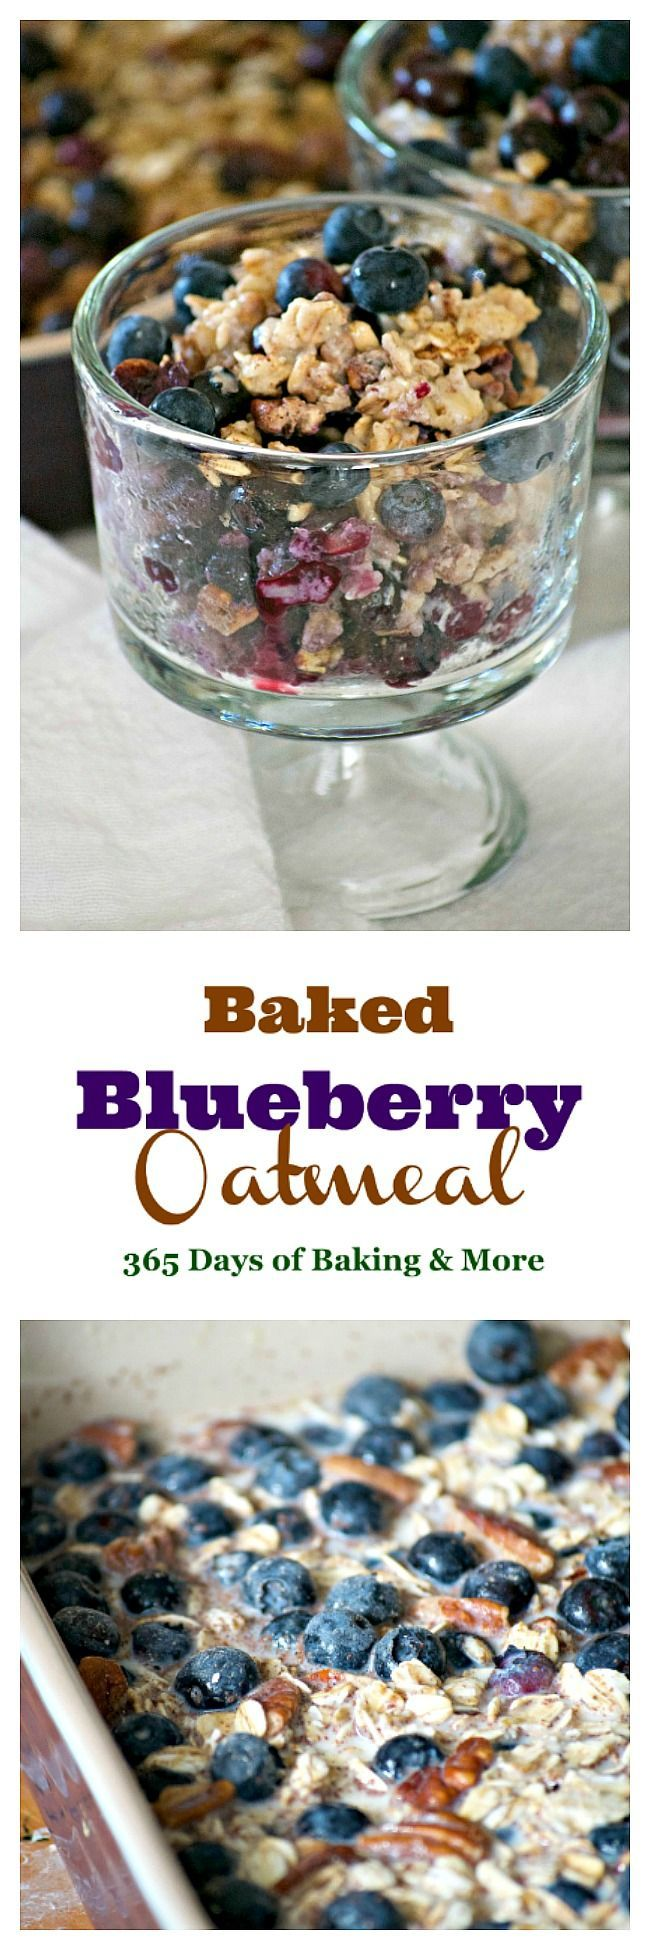 This Baked Blueberry Oatmeal with oats, pecans, cinnamon, milk, honey and blueberriesis the perfect for a chilly winter's day. Don't go stovetop, bake it!